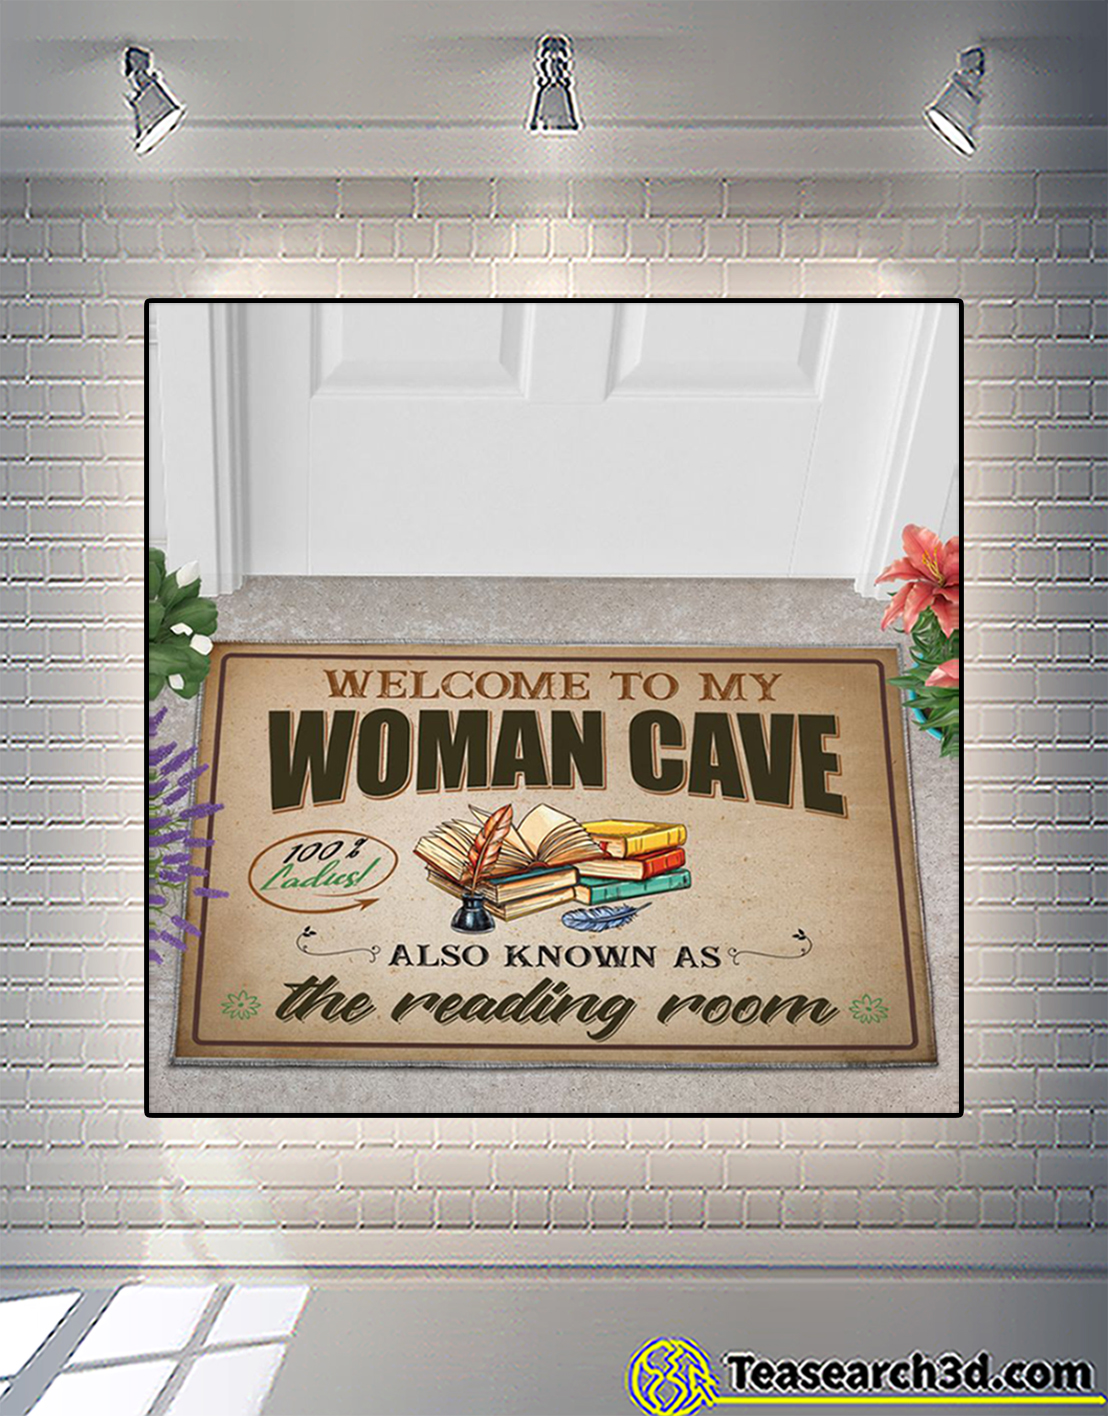 Welcome to my woman cave also know as the reading room doormat 2